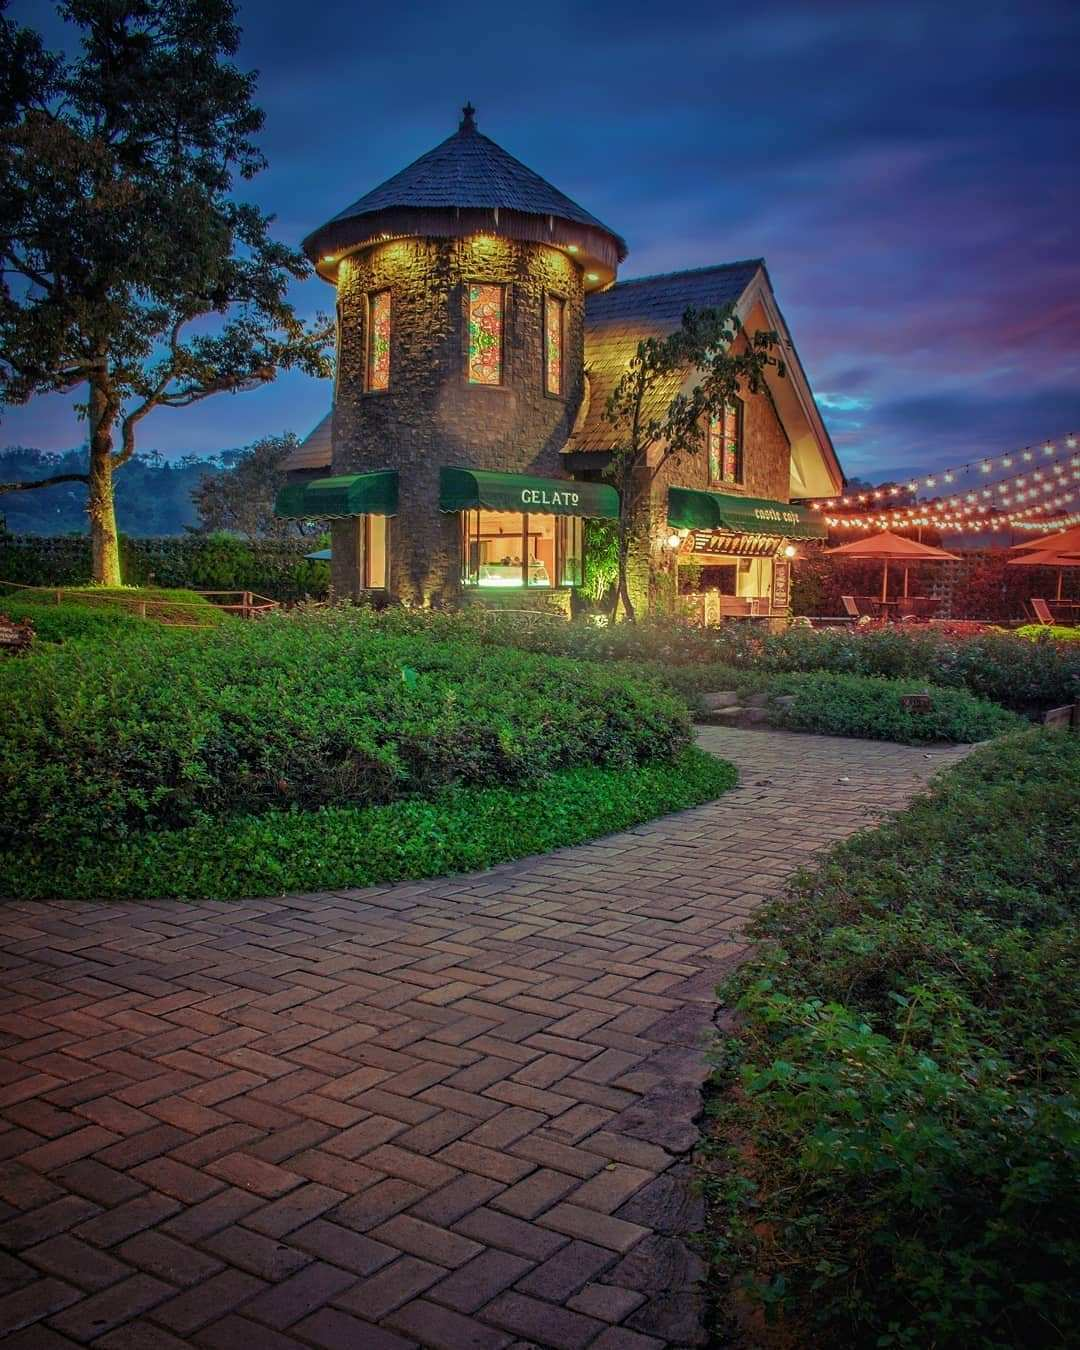 Cafe Berbentuk Castle di The Ranch Cisarua Puncak Image From @m.uya1012